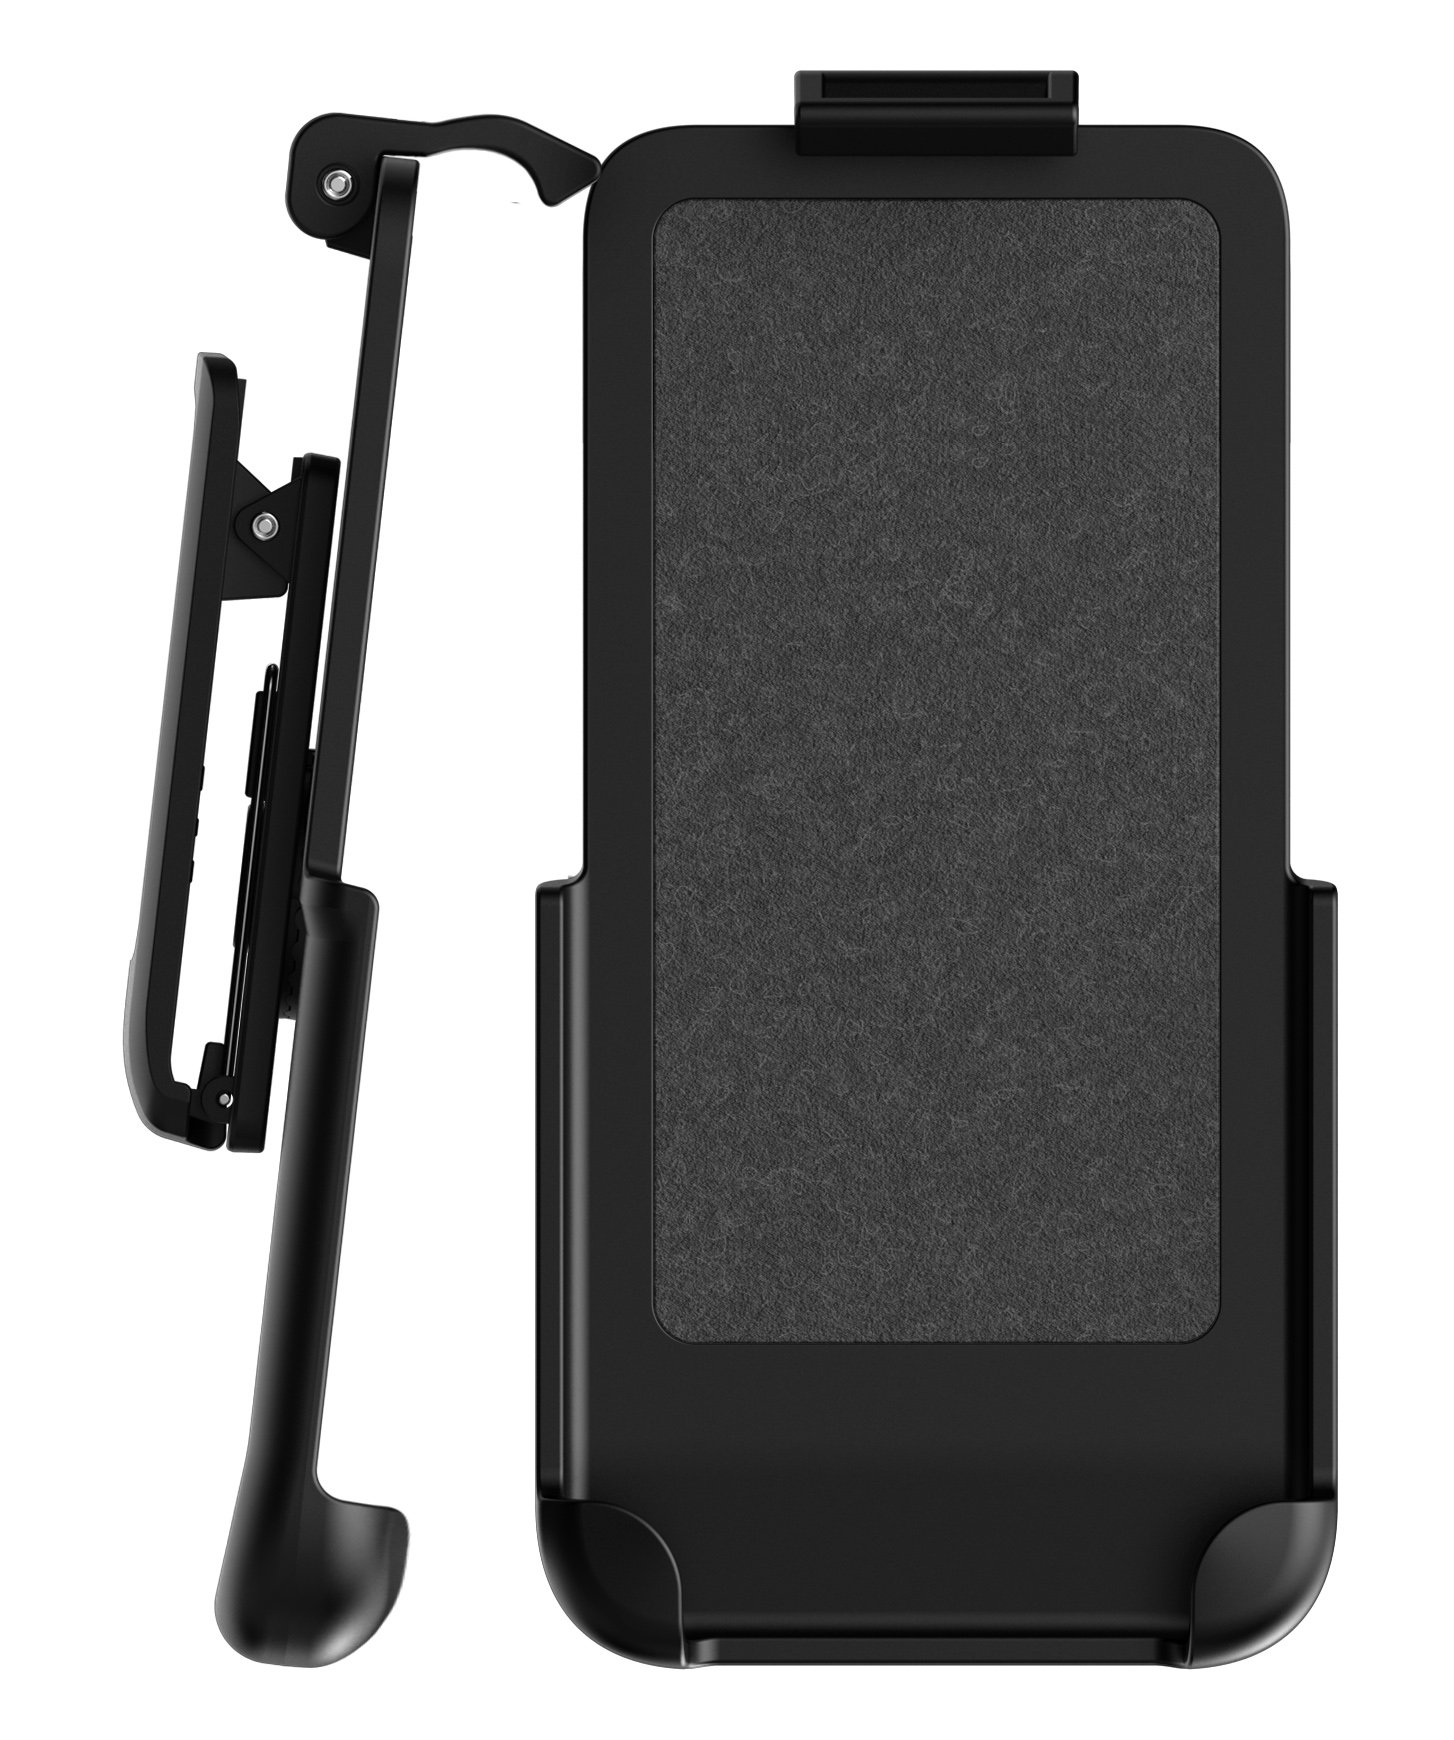 Encased Belt Clip Holster for Lifeproof Fre Case - iPhone 8 Plus 5.5'' (case not included)